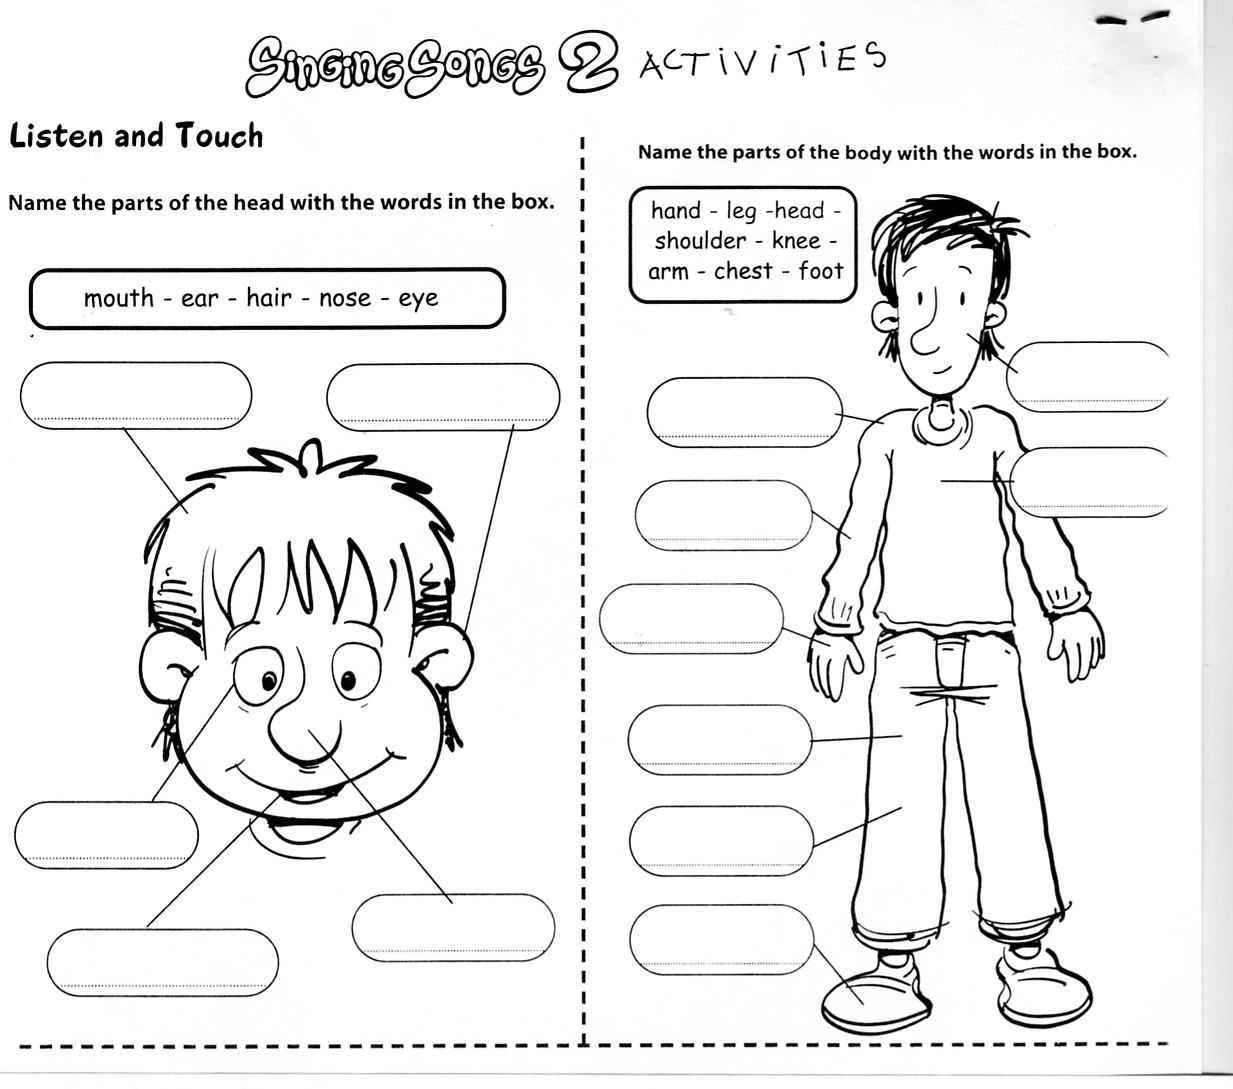 worksheet My Body Worksheets For Grade 1 this esol worksheet is intended to familiarize the children with parts of their body